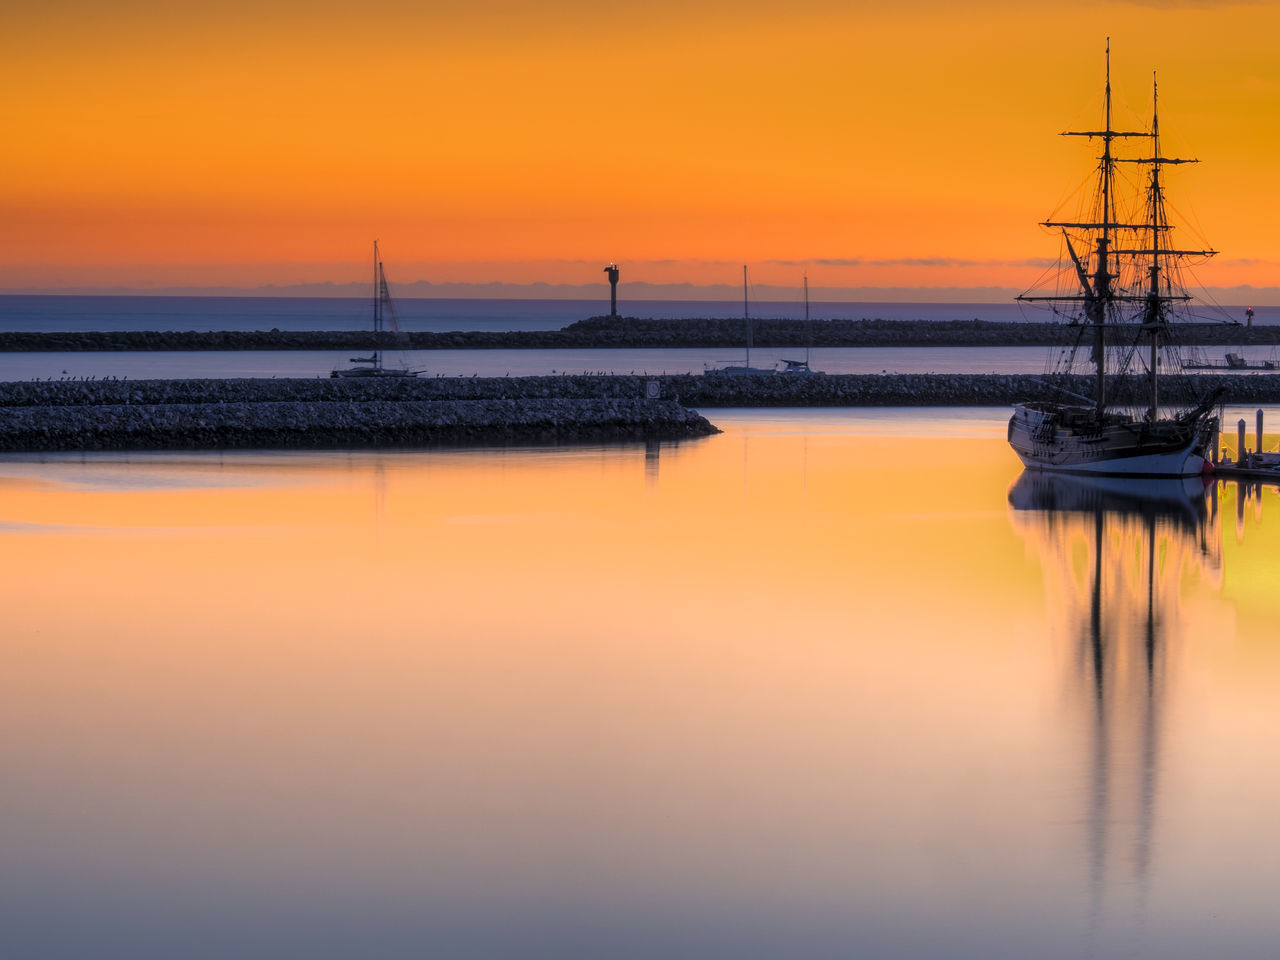 Sailboat In River Against Orange Sky During Sunset